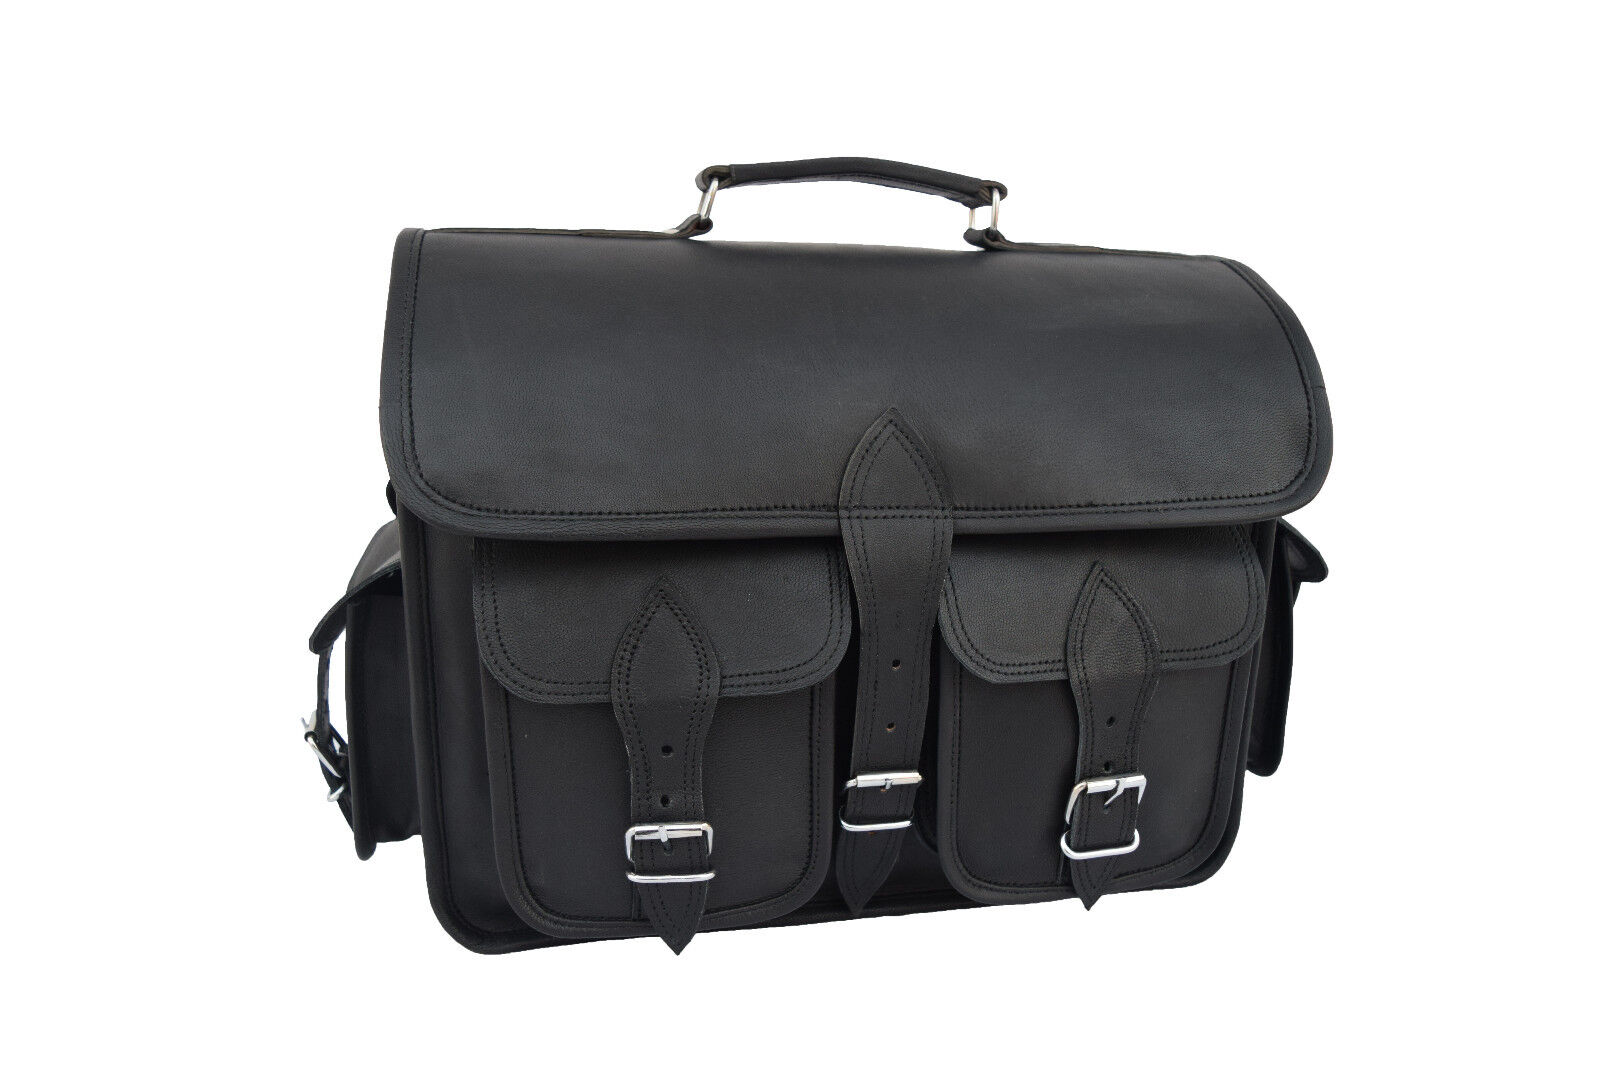 dslr camera bag black leather messenger satchel